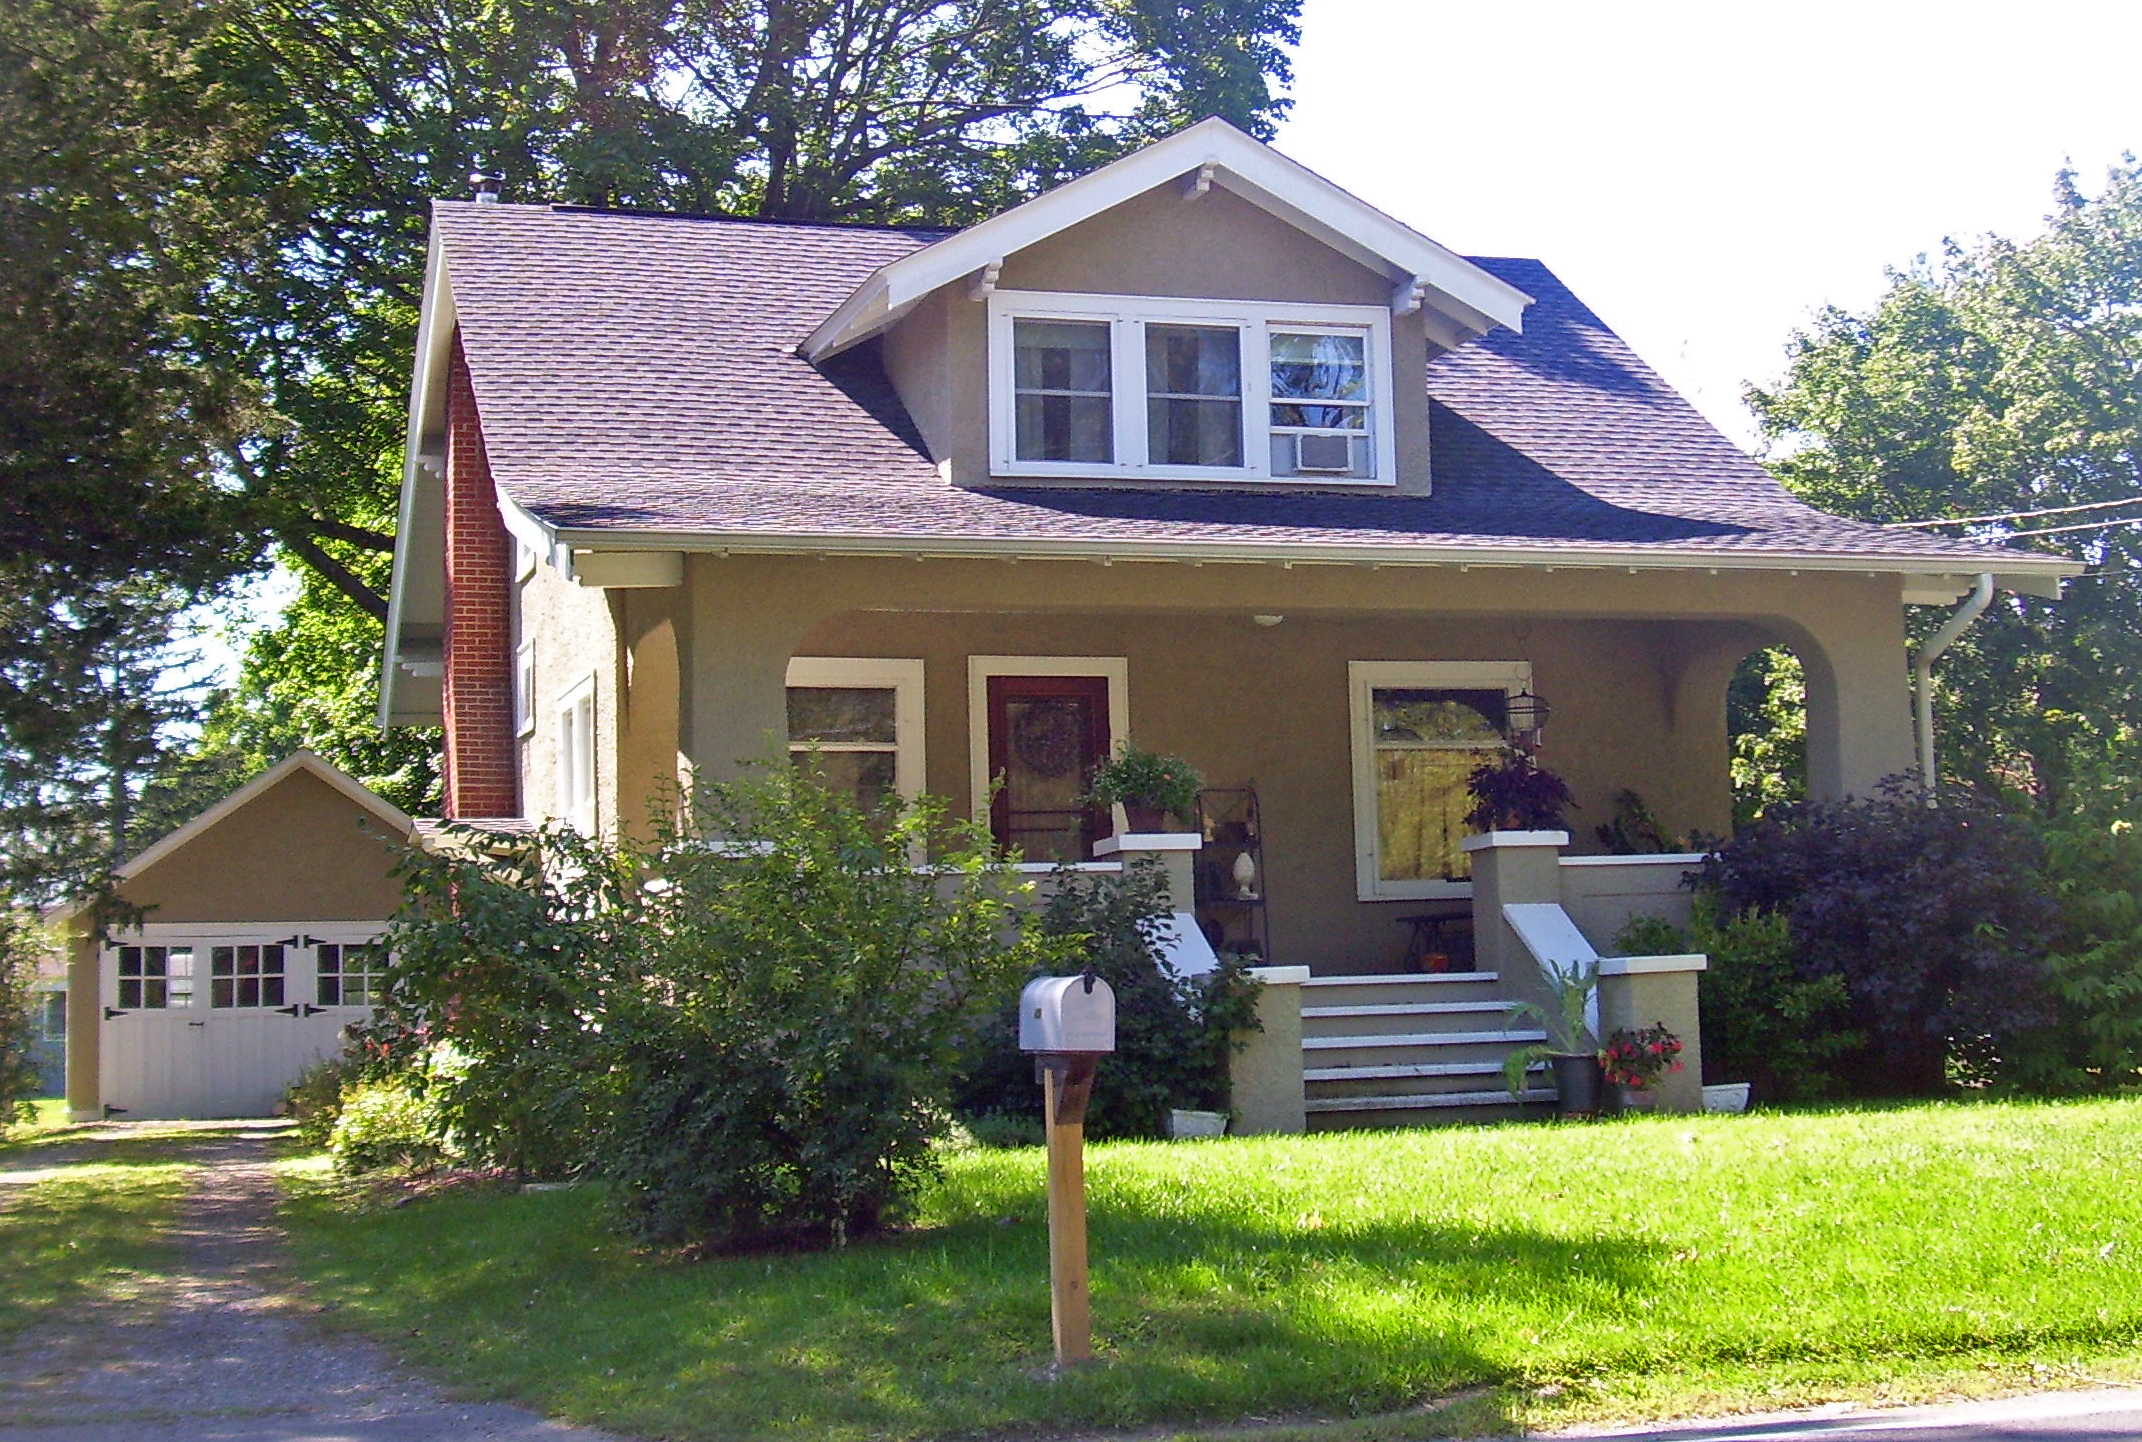 File:Harriet Phillips Bungalow.jpg - Wikipedia